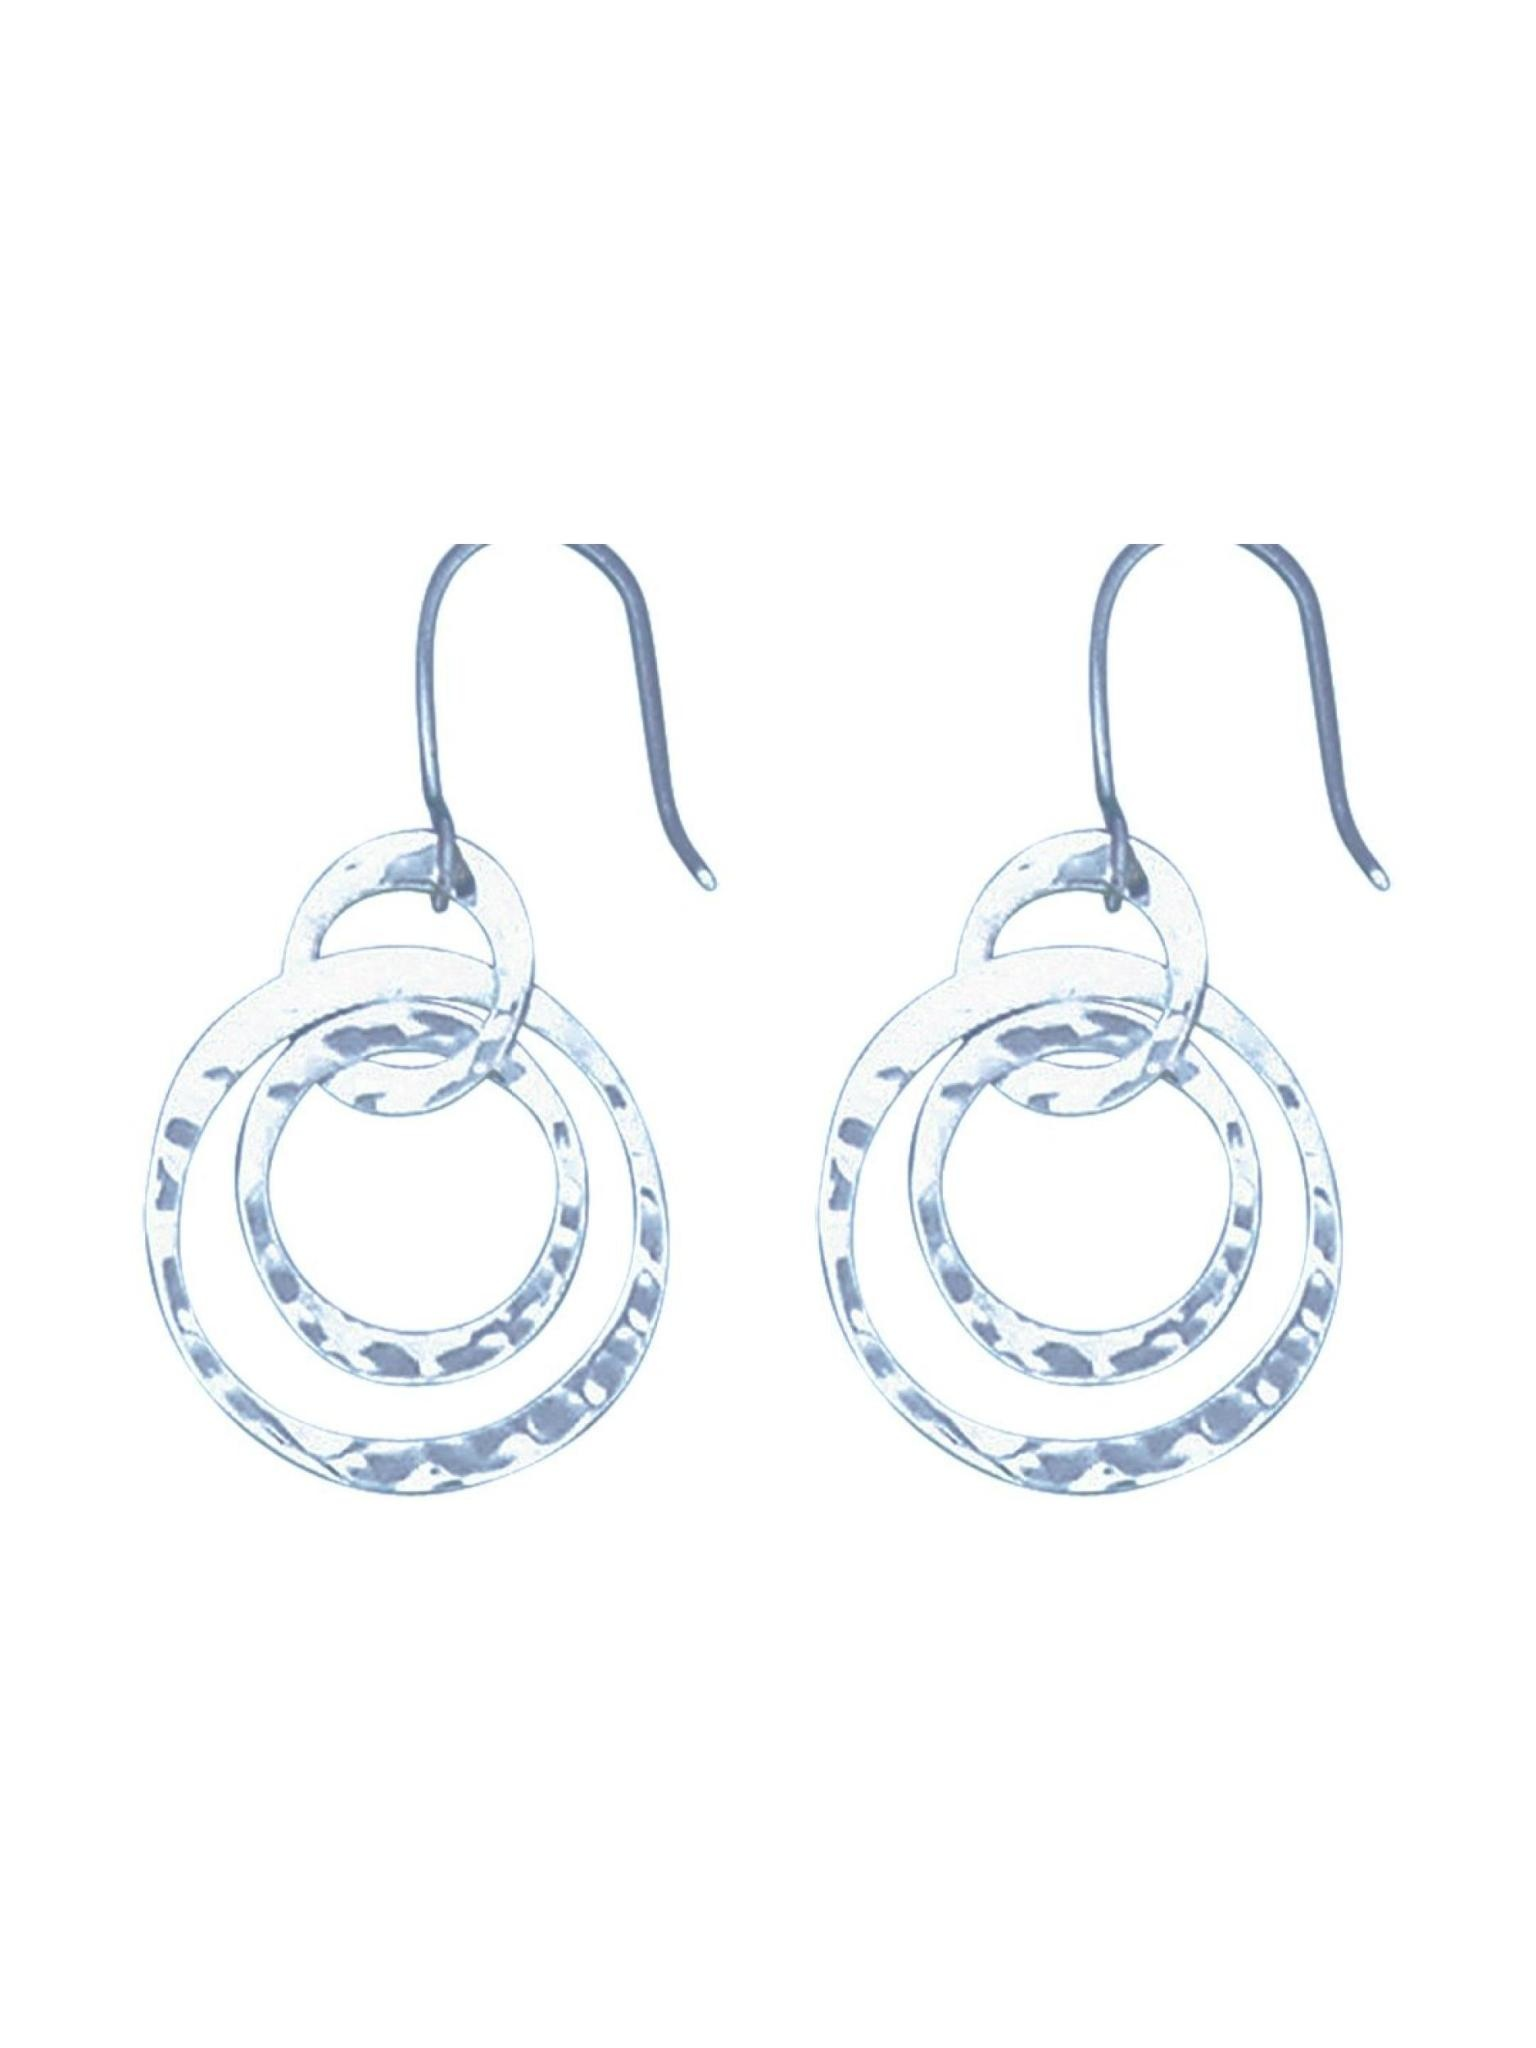 Acomo Jewelry 3 Dangling Hammered Circles Earring